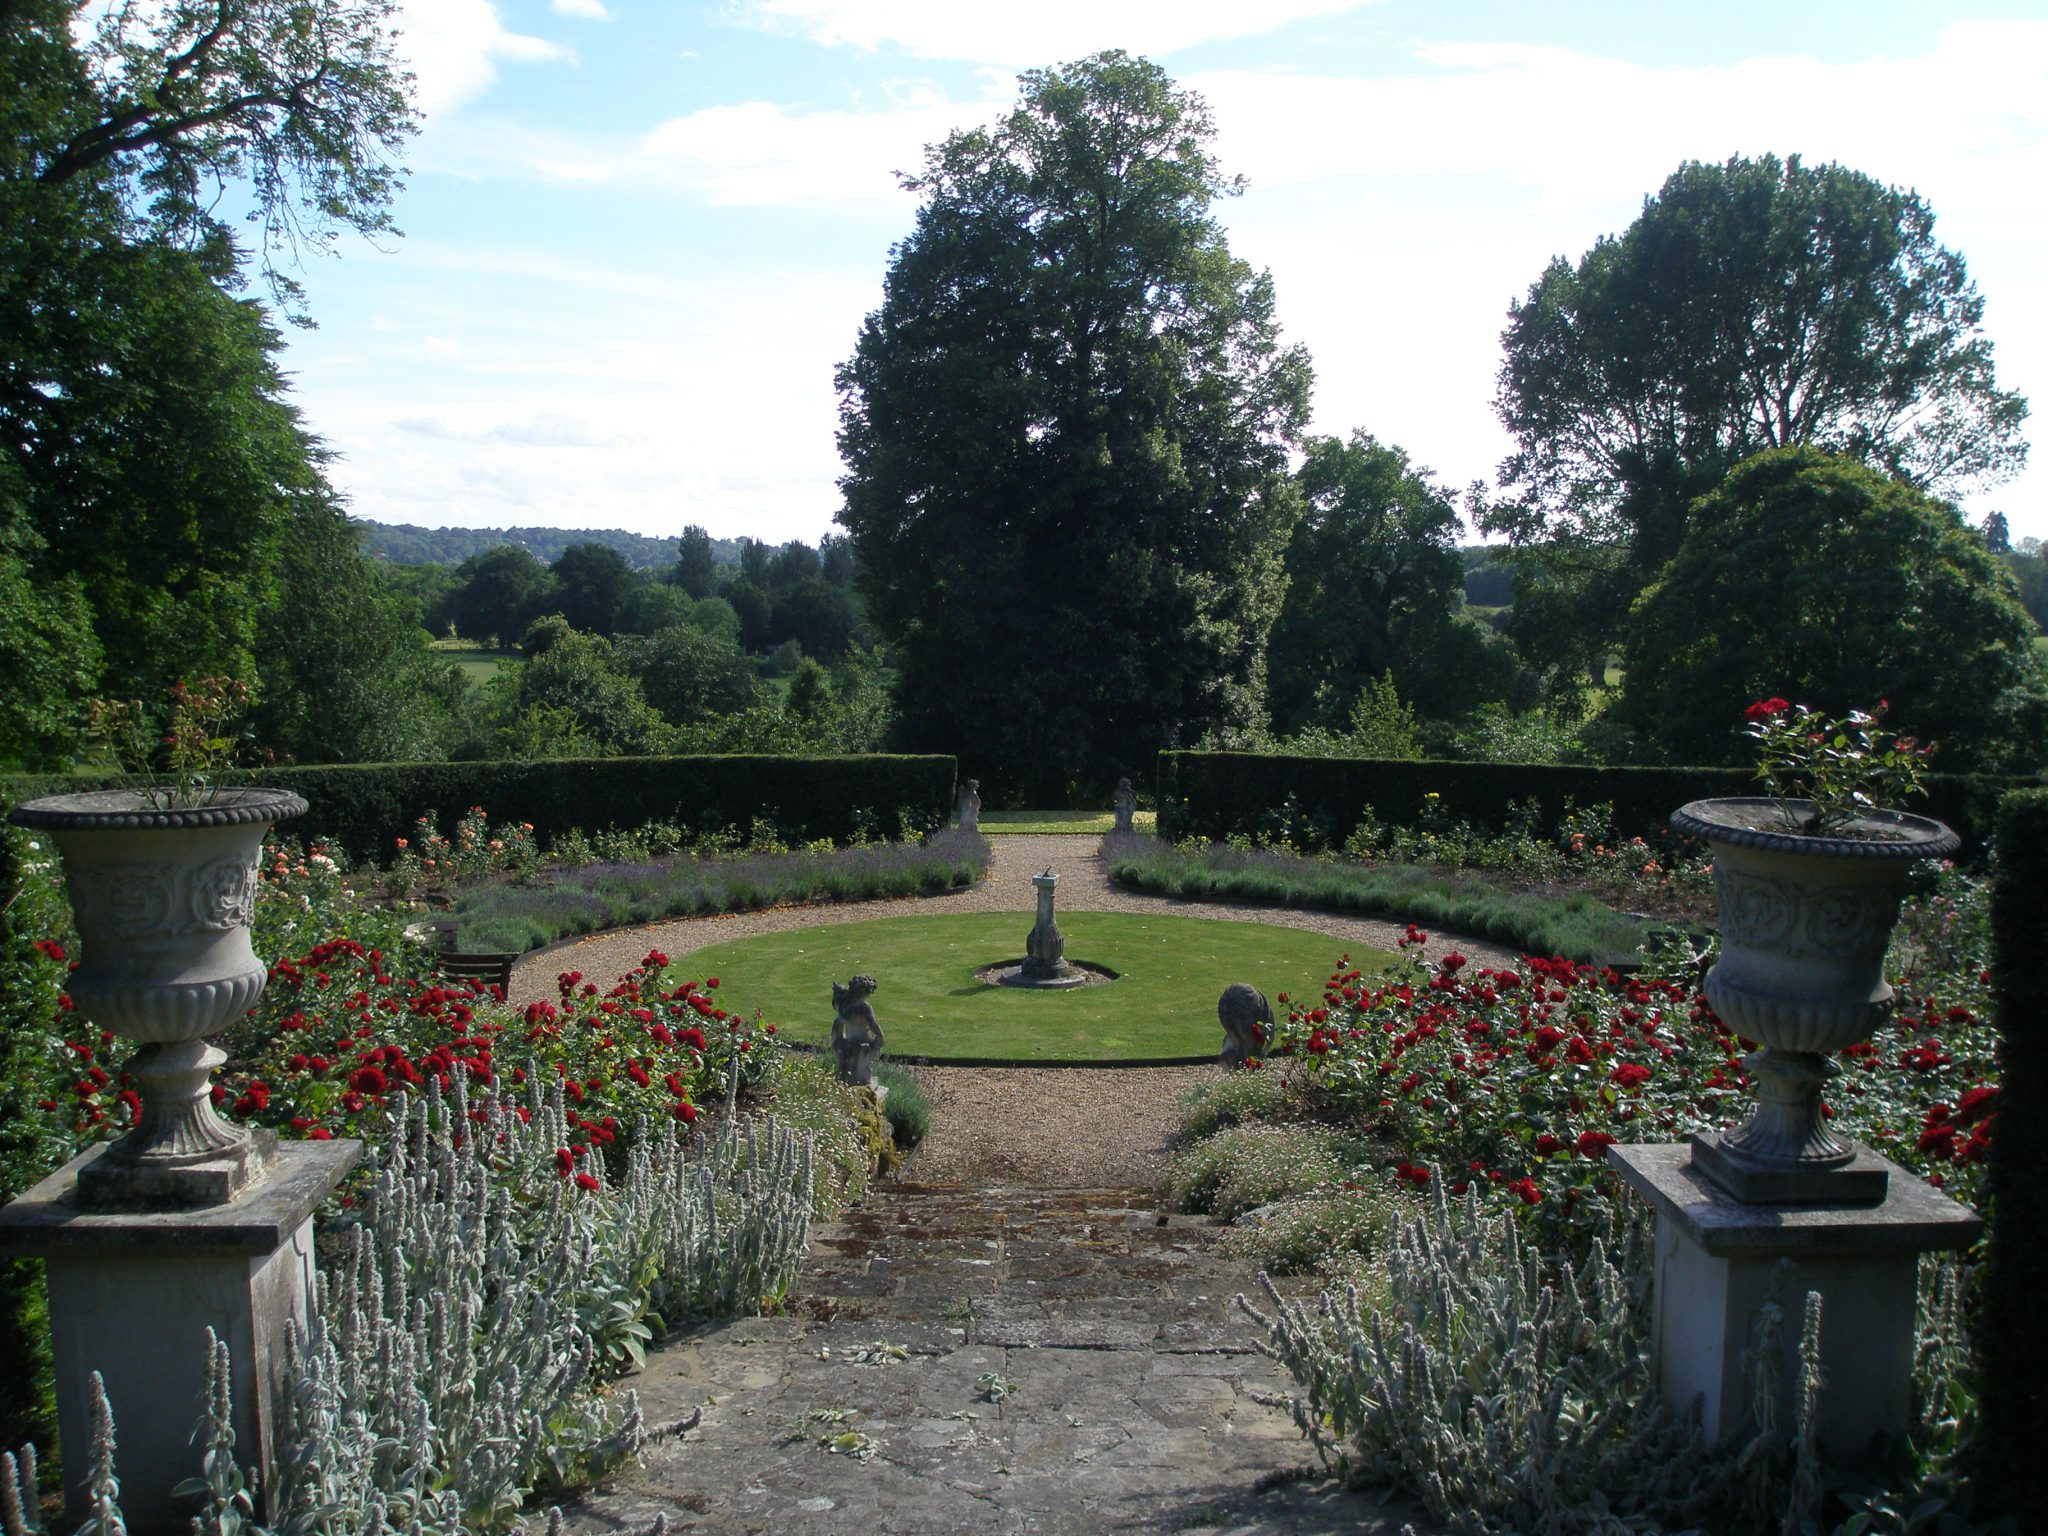 View from the top of the Golden Jubilee Rose Garden